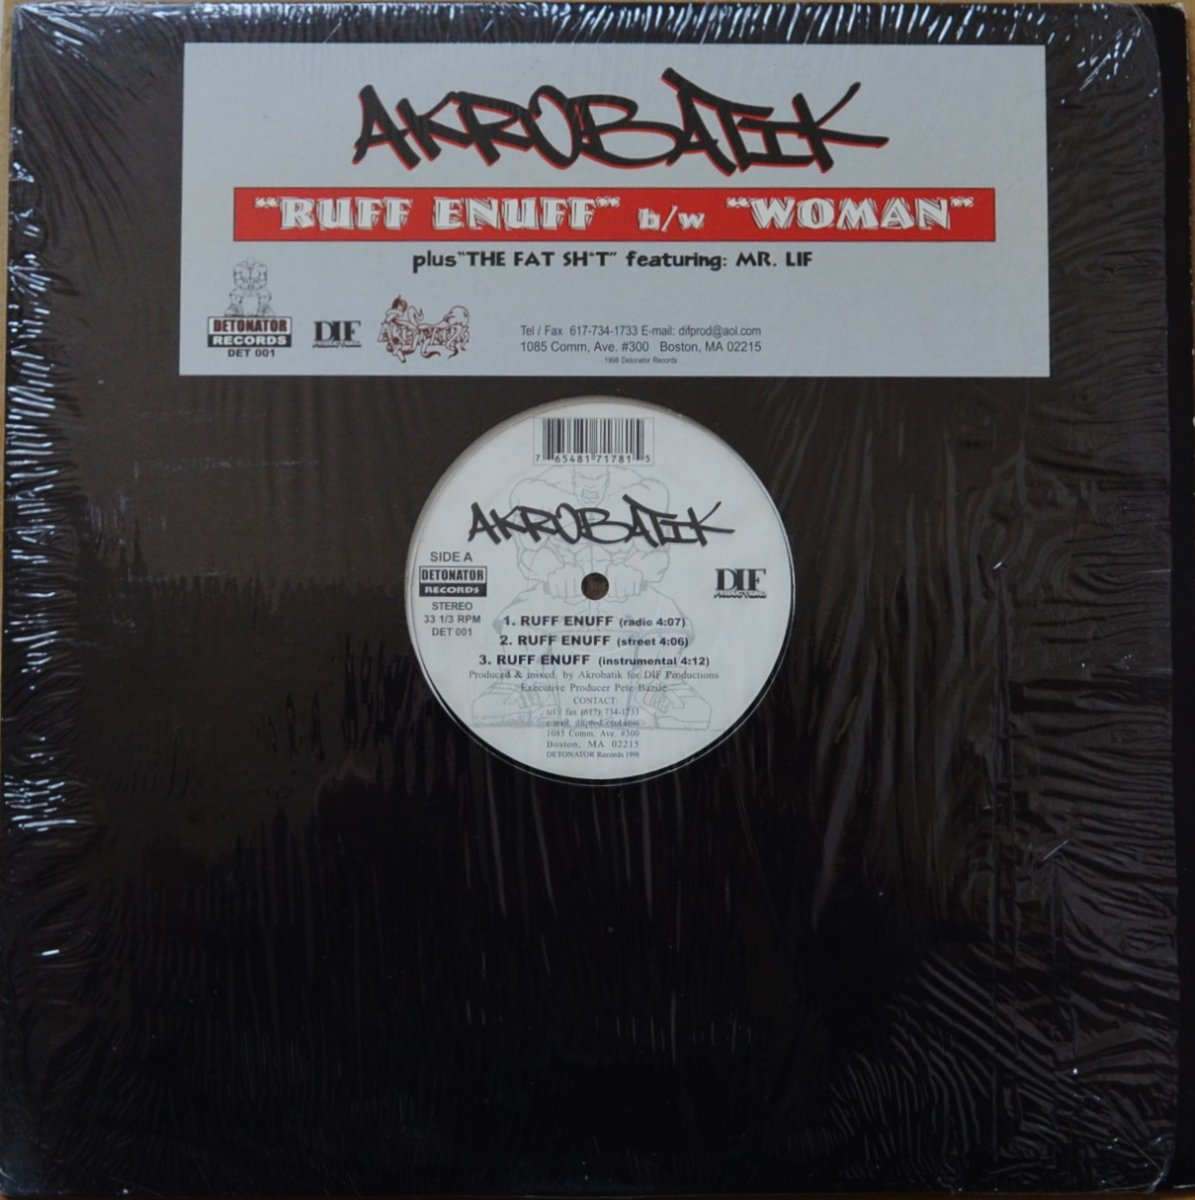 AKROBATIK ‎/ RUFF ENUFF / WOMAN / THE FAT SH*T (FEAT.MR.LIF) (12